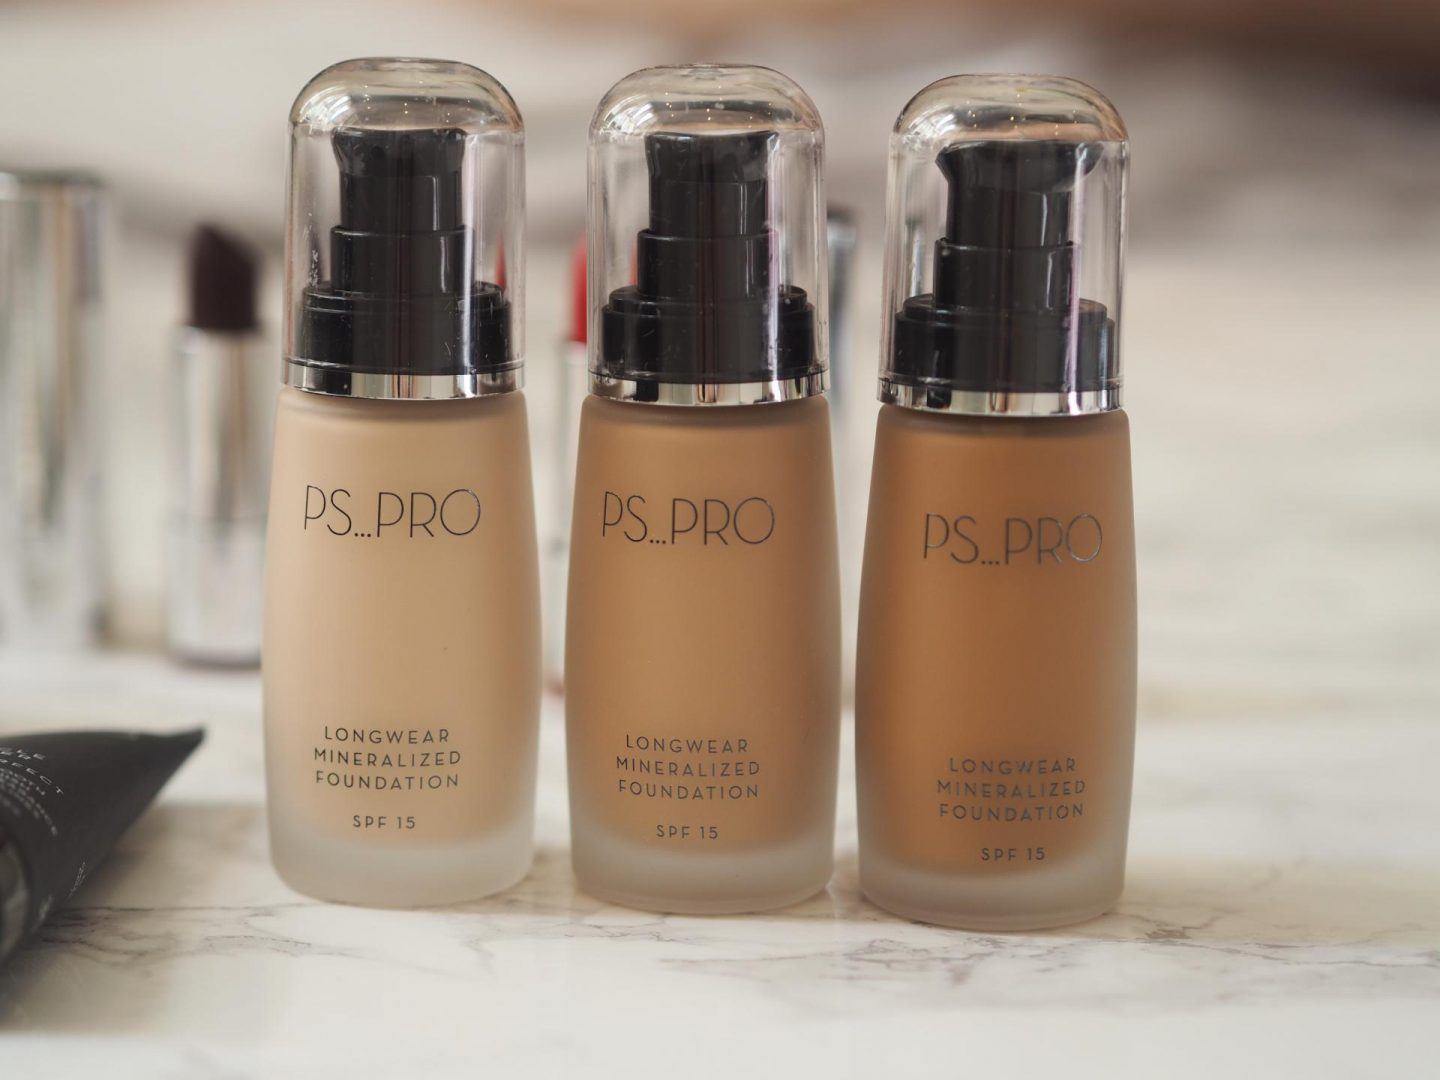 Primark PS Pro - Products: Longwear Mineralized Foundation